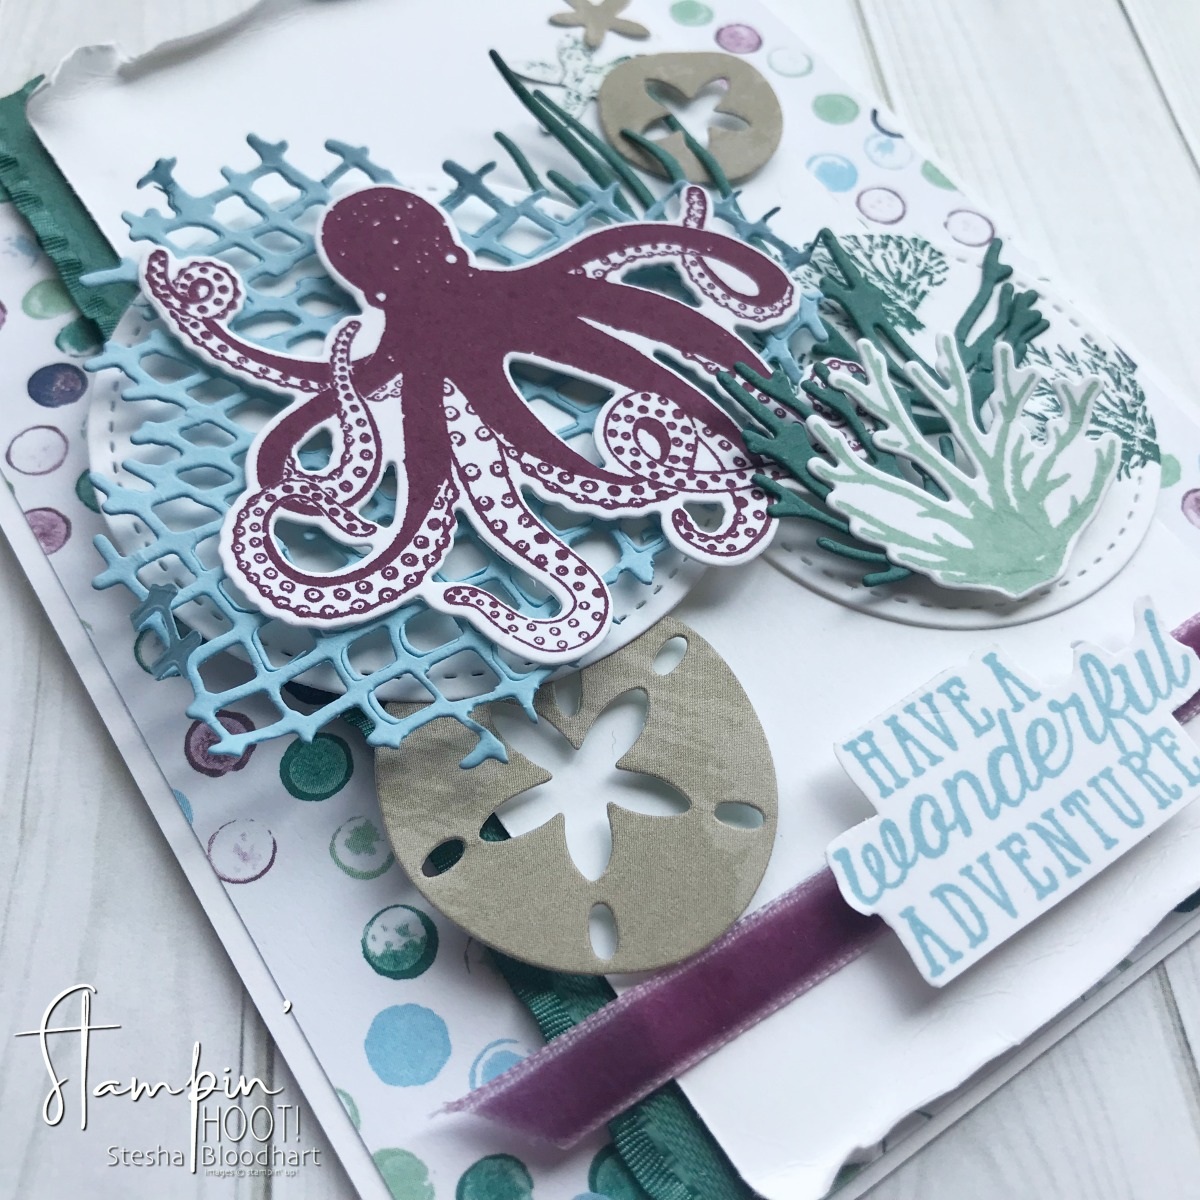 Sea of Textures Bundle by Stampin' Up! for the #tgifc168 Sketch Challenge Created by Stesha Bloodhart, Stampin' Hoot! #steshabloodhart #stampinhoot